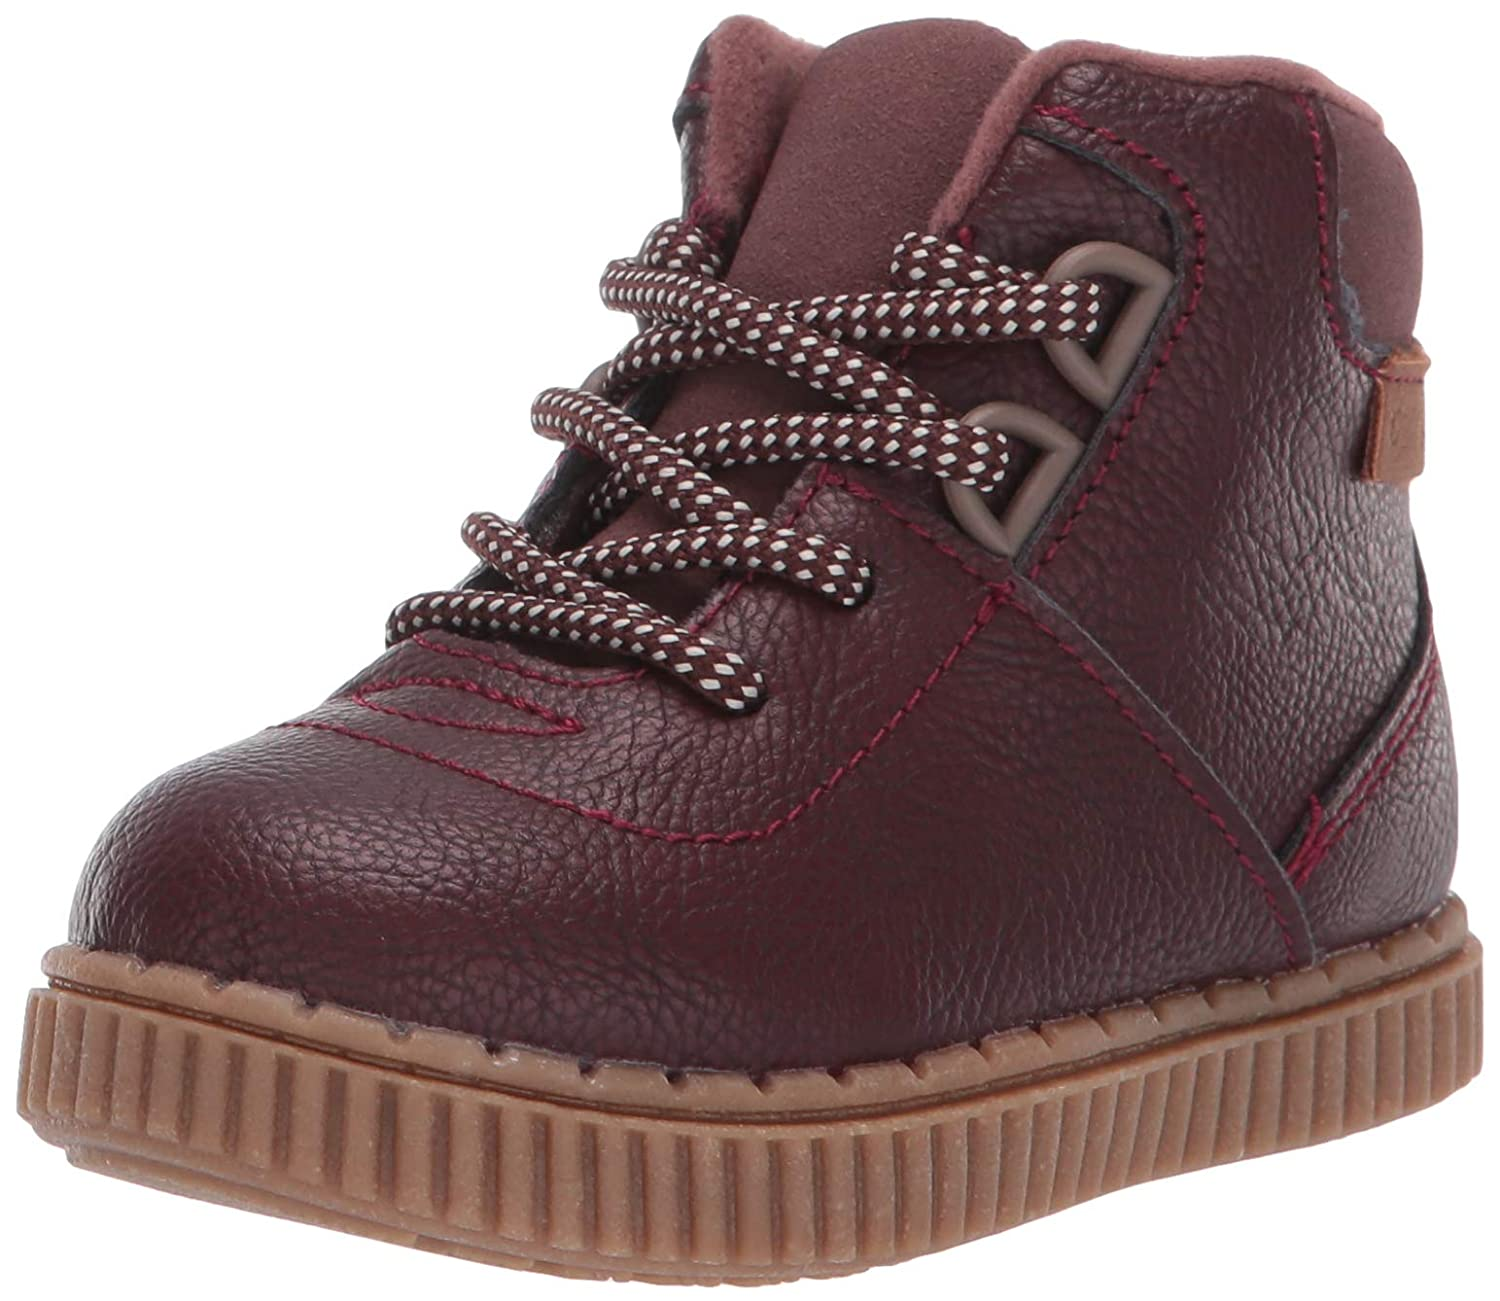 OshKosh BGosh Kids Haskell Ankle Boot